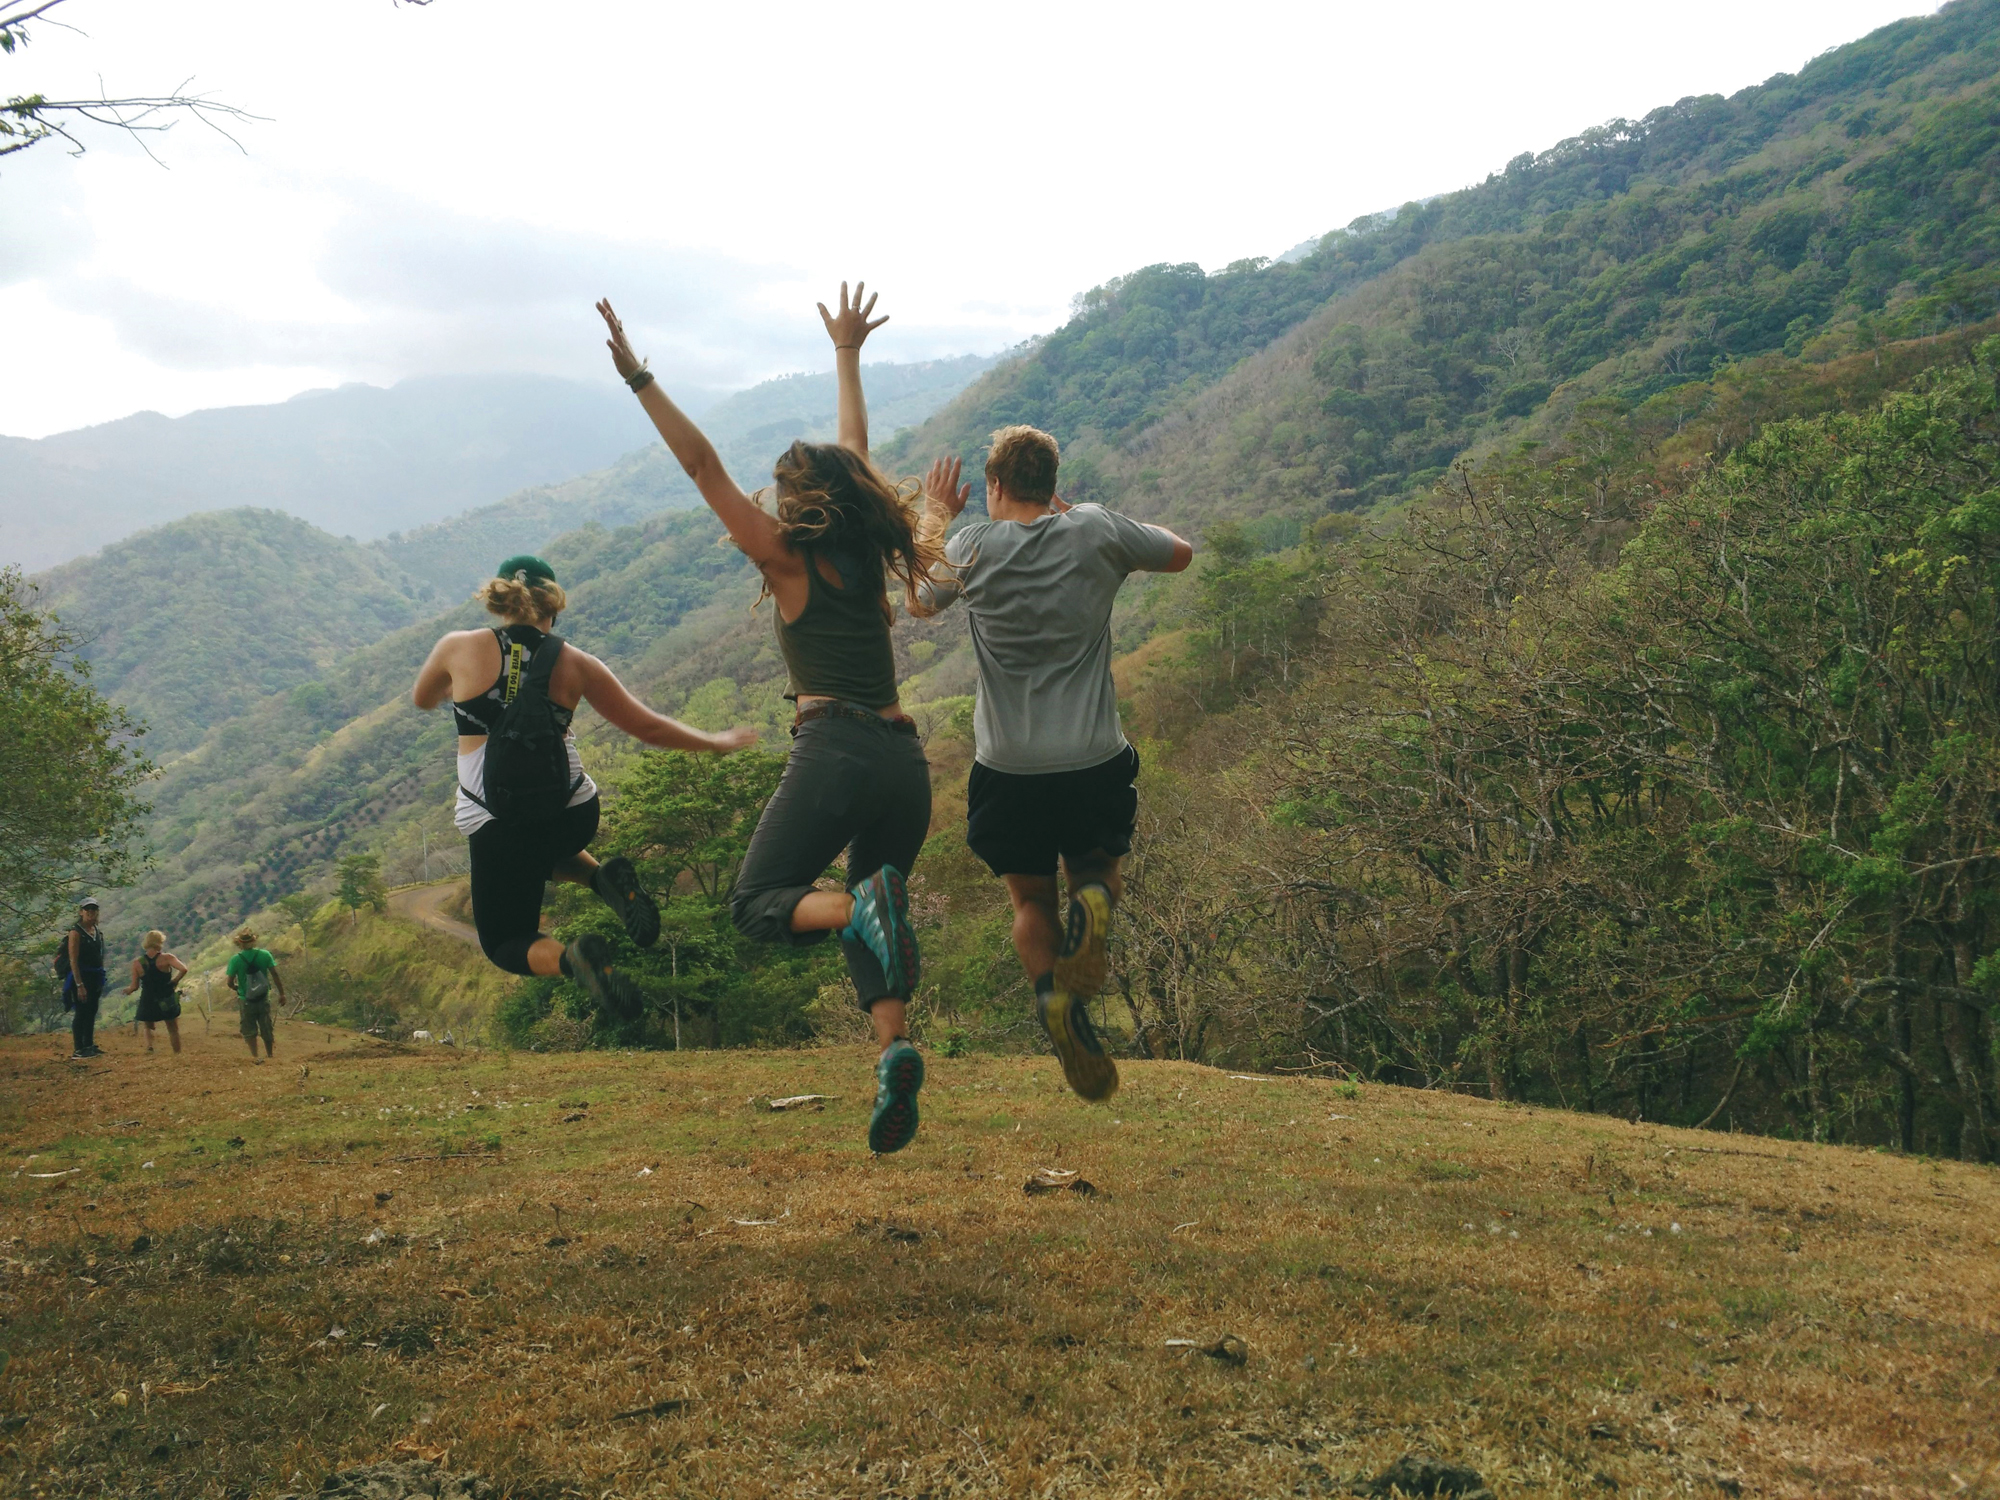 A group of students run and jump across the green hills of a Costa Rican countryside.